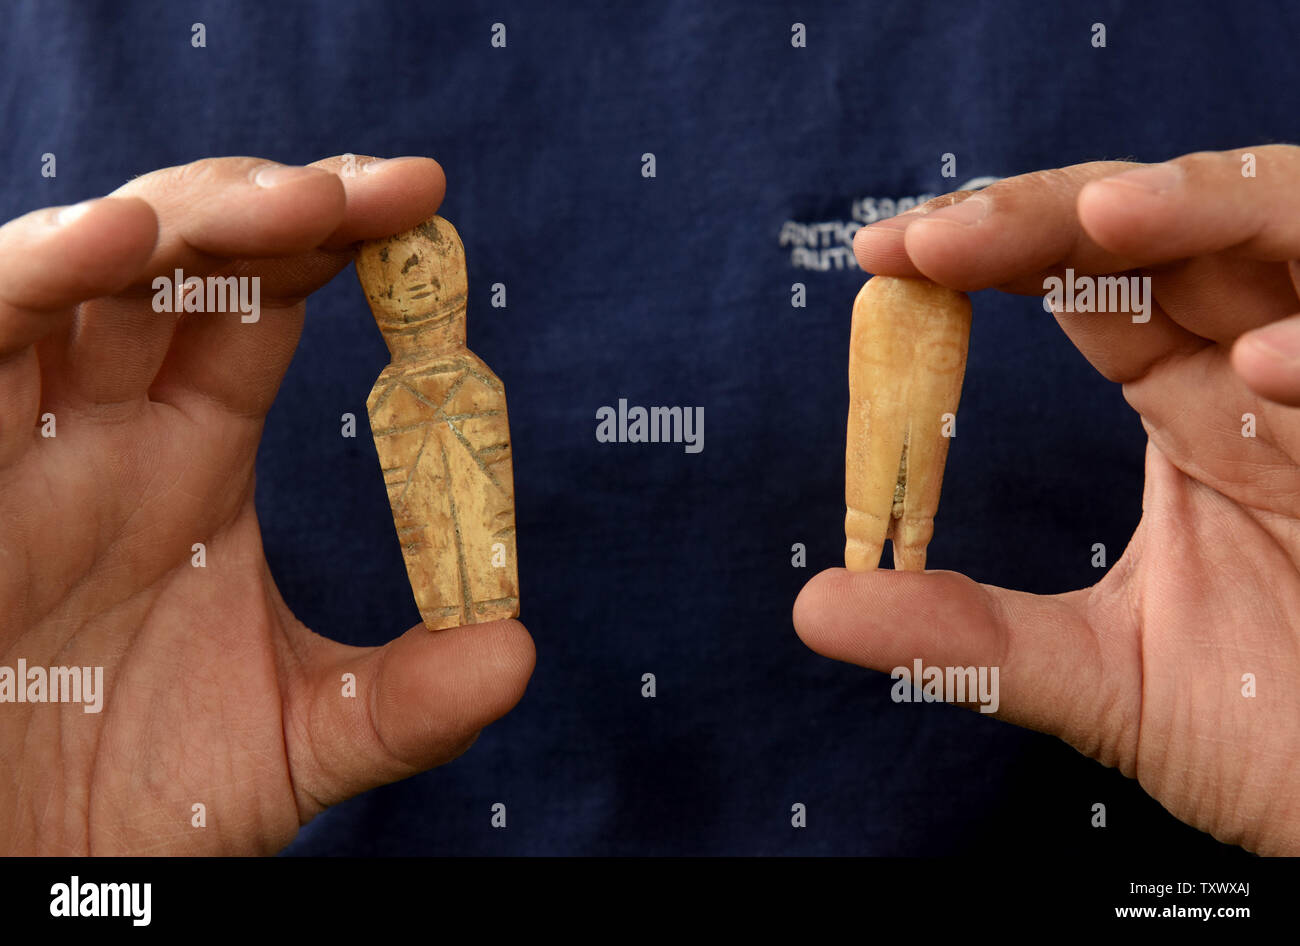 A man holds small puppets made of bone during the Islamic Period that wasdiscovered during excavations by the Israeli Antiquity Authority in Caesarea, Israel, April 26, 2017. The Edmond de Rothschild Foundations is investing approximately $275,000 to expose and restore Caesarea's hidden treasures.  Photo by Debbie Hill/UPI - Stock Image